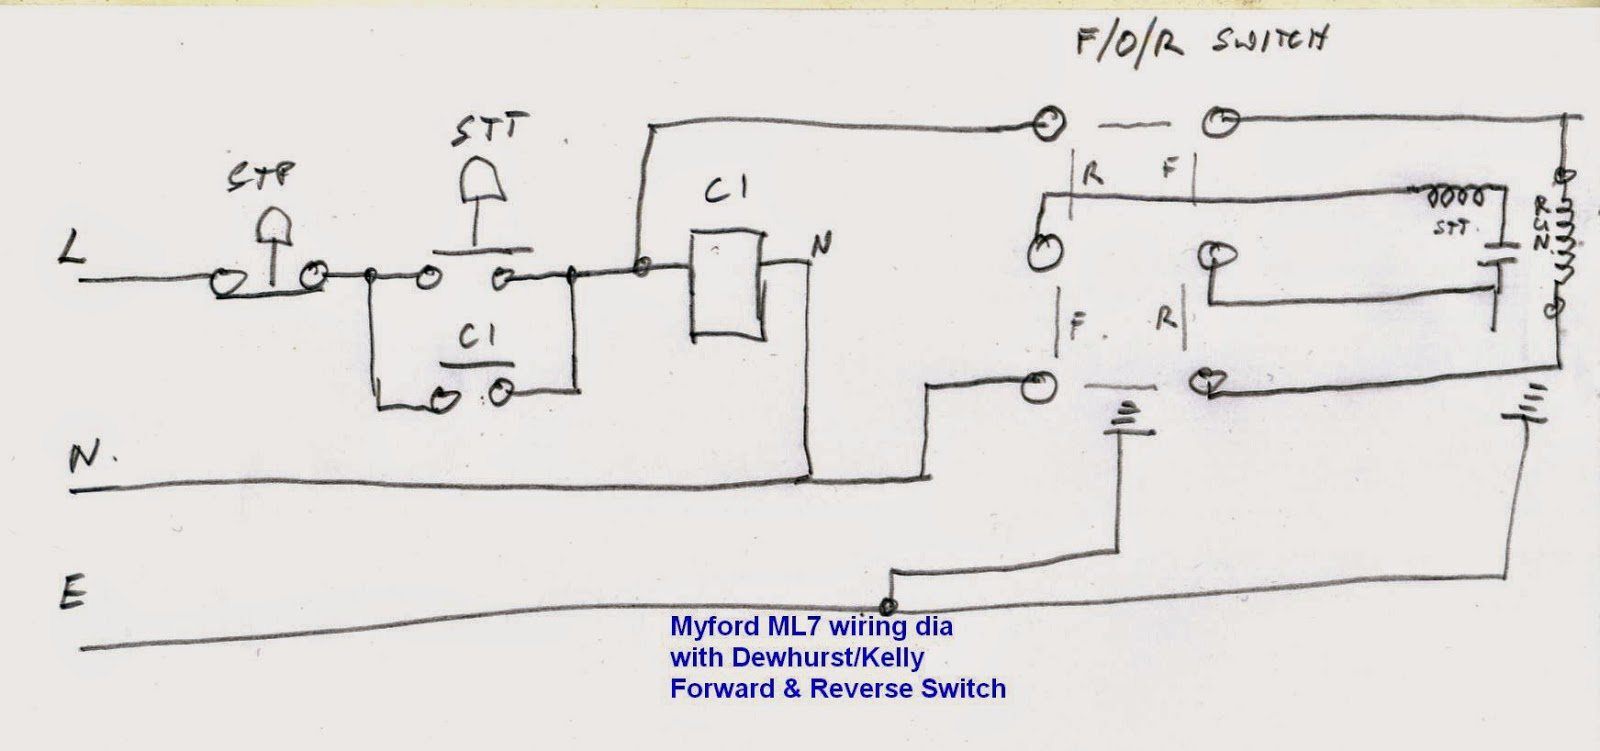 Myford lathe wiring diagram wiring wool n wood may 2015 lathe control wiring schematic myford lathe wiring diagram cheapraybanclubmaster